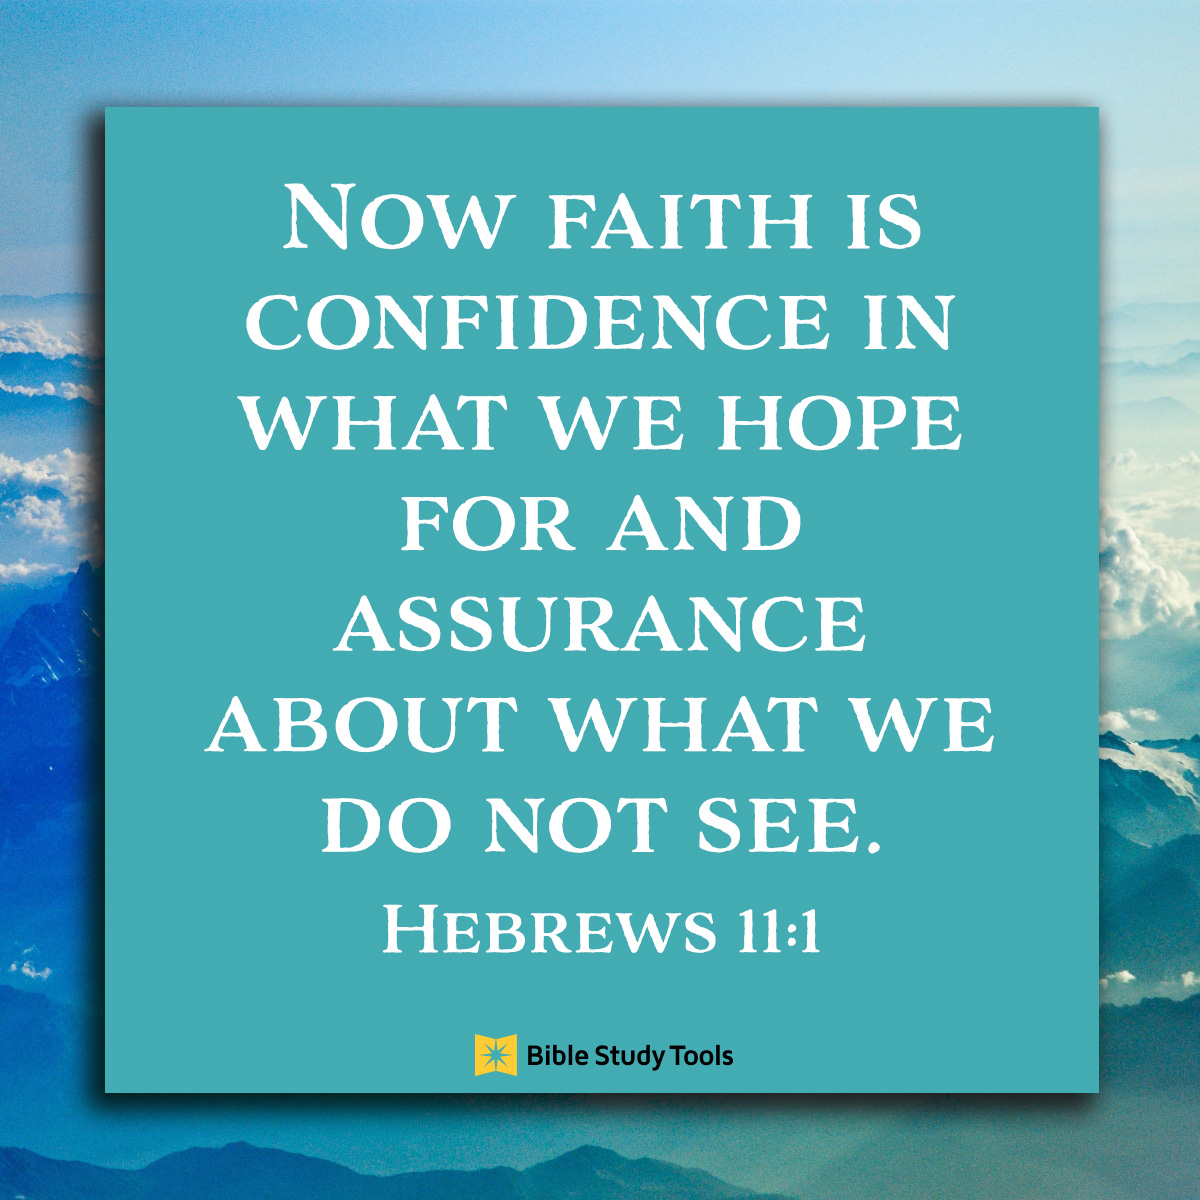 Hebrews 11:1, inspirational image